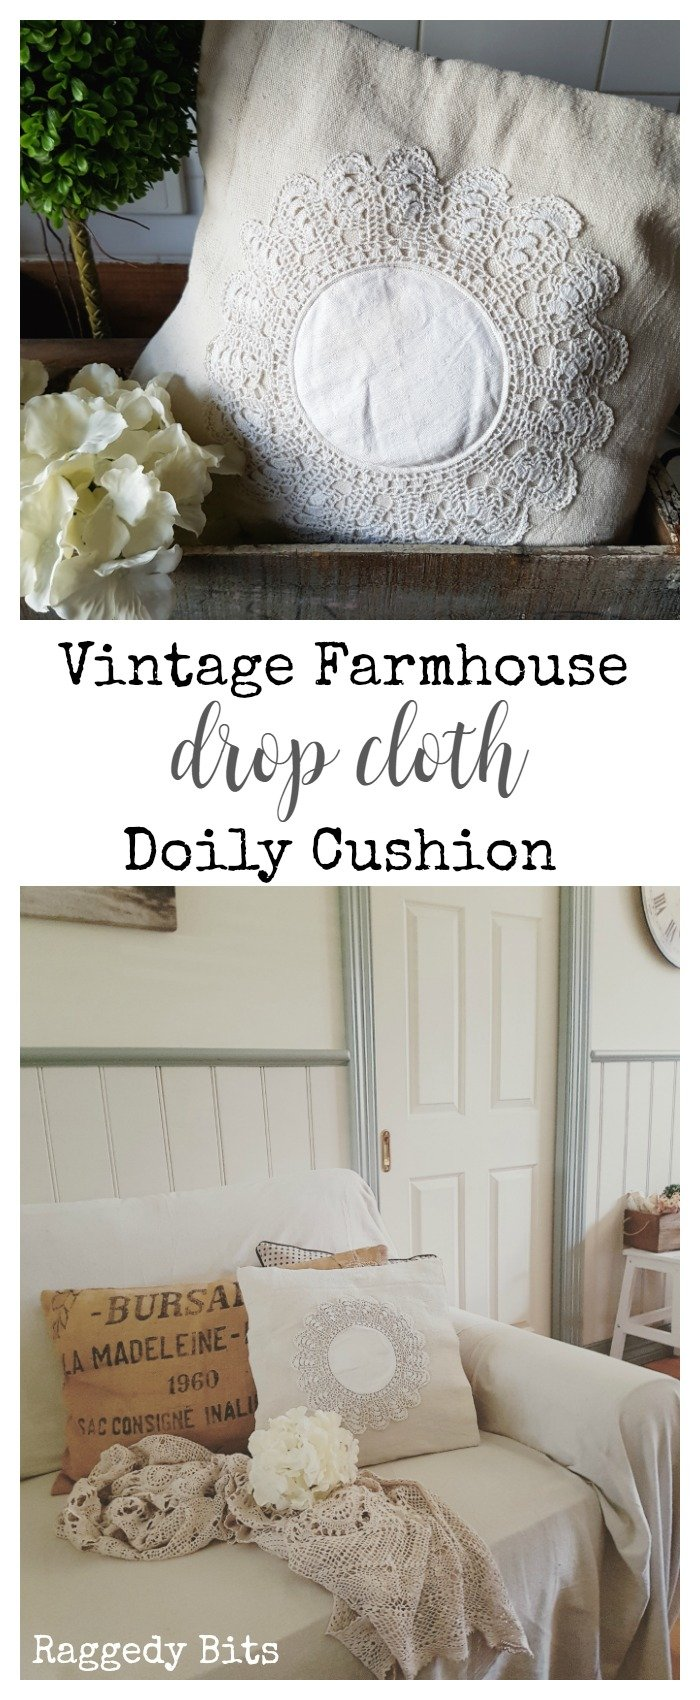 It's that fun time for our monthly craft destash challenge. Sharing how to make a Vintage Farmhouse Drop Cloth Doily Cushion | Full Tutorial | www.raggedy-bits.com